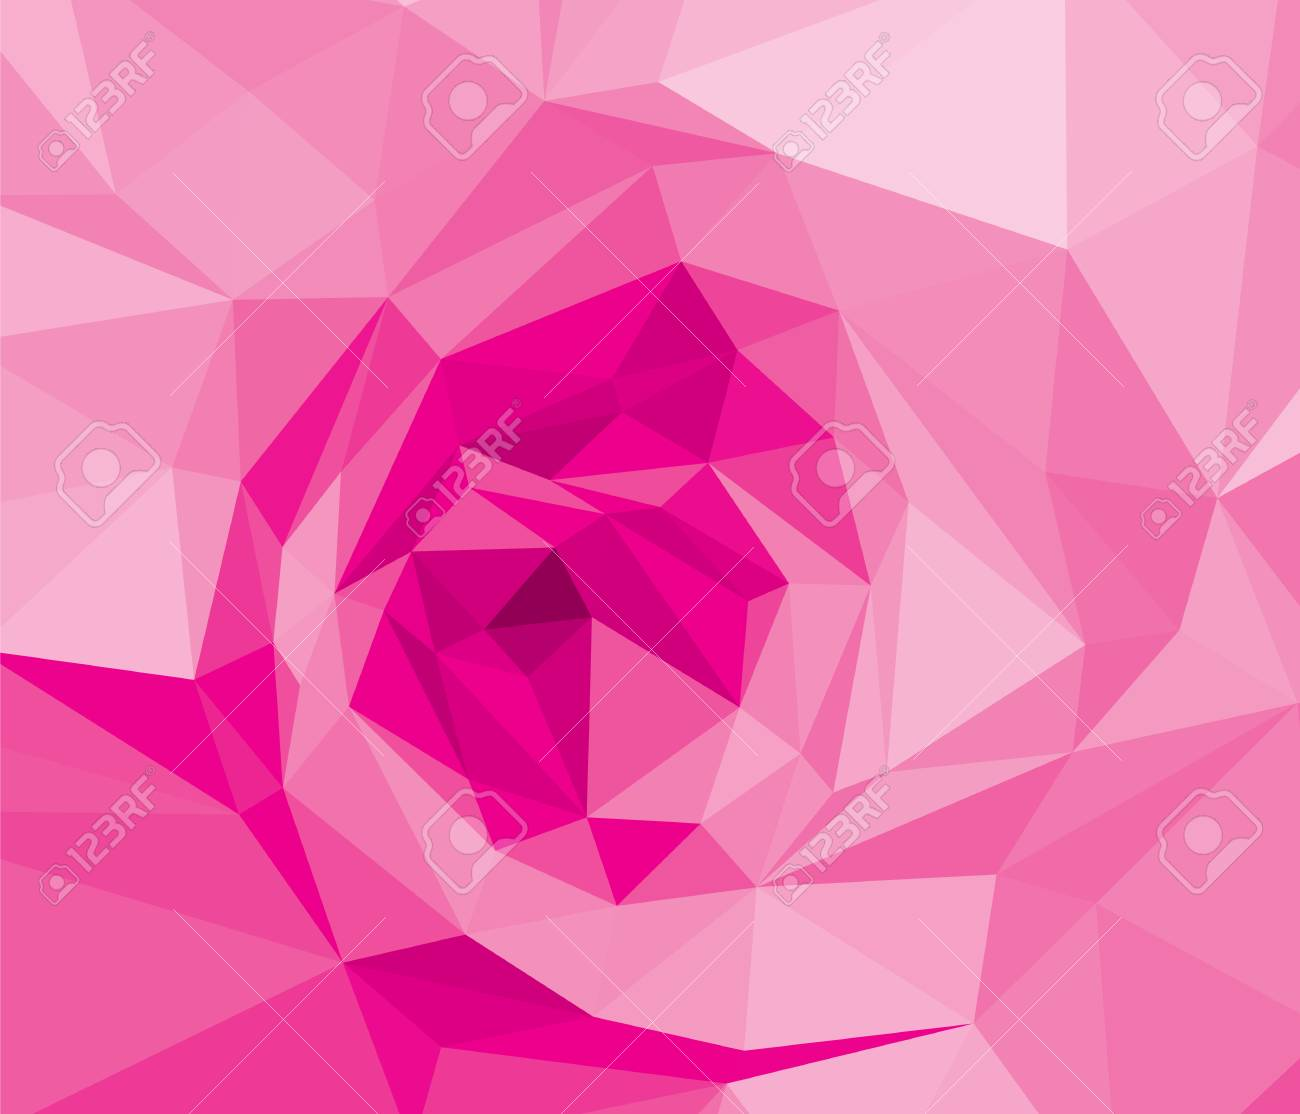 Pink Rose Wallpaper Background Wedding Purple Flora Plant Geometric